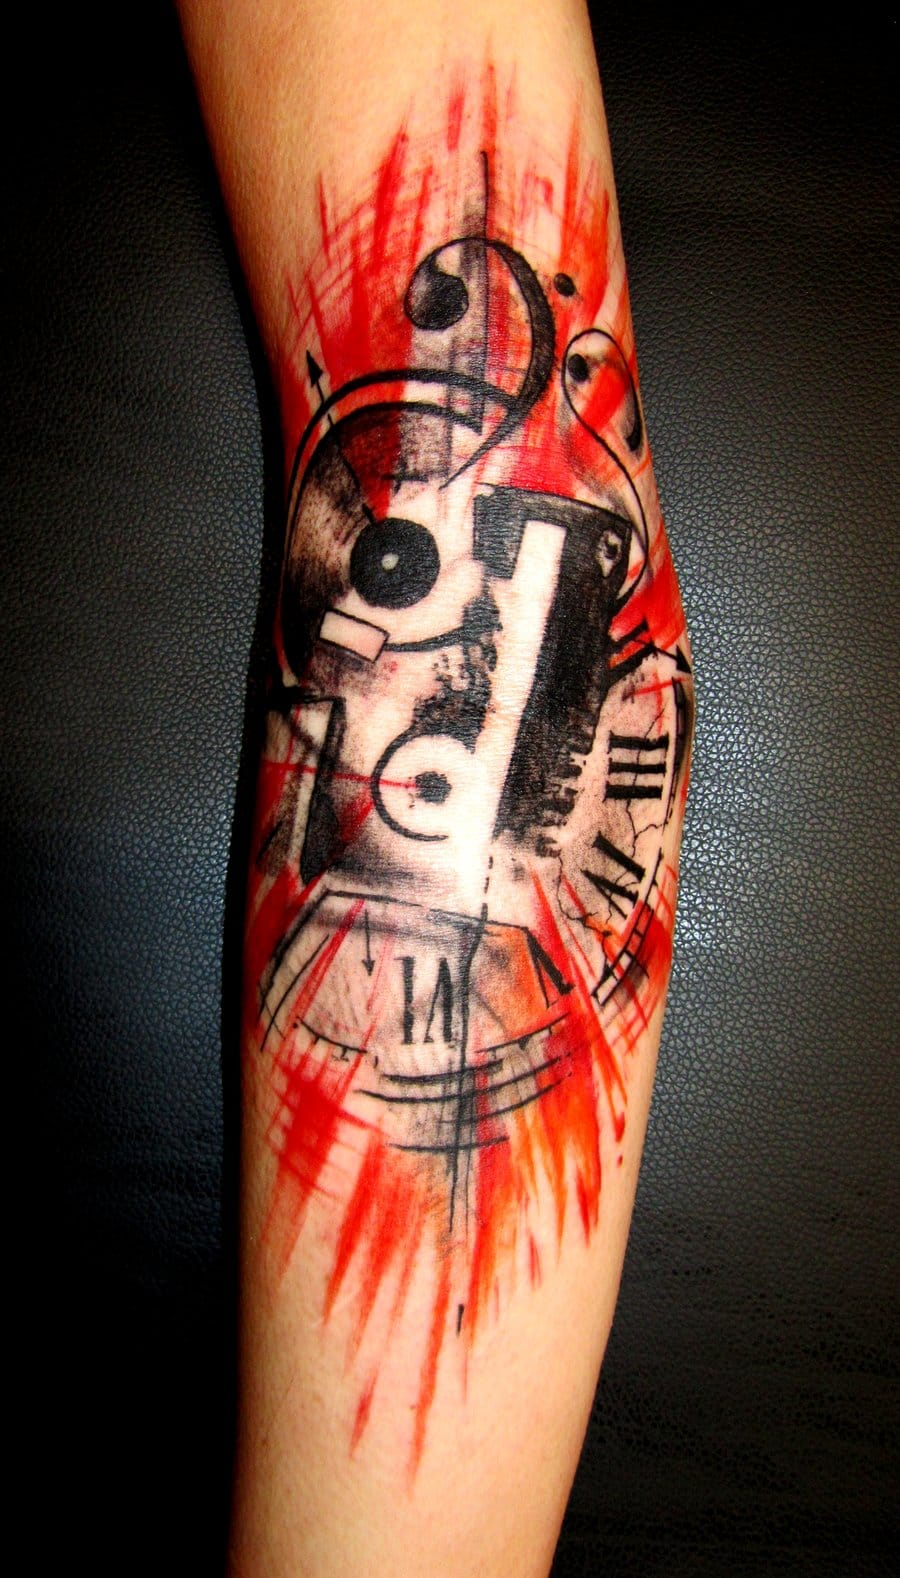 Explosive arm piece with mashup of music tattoos #musictattoo #music tattoos